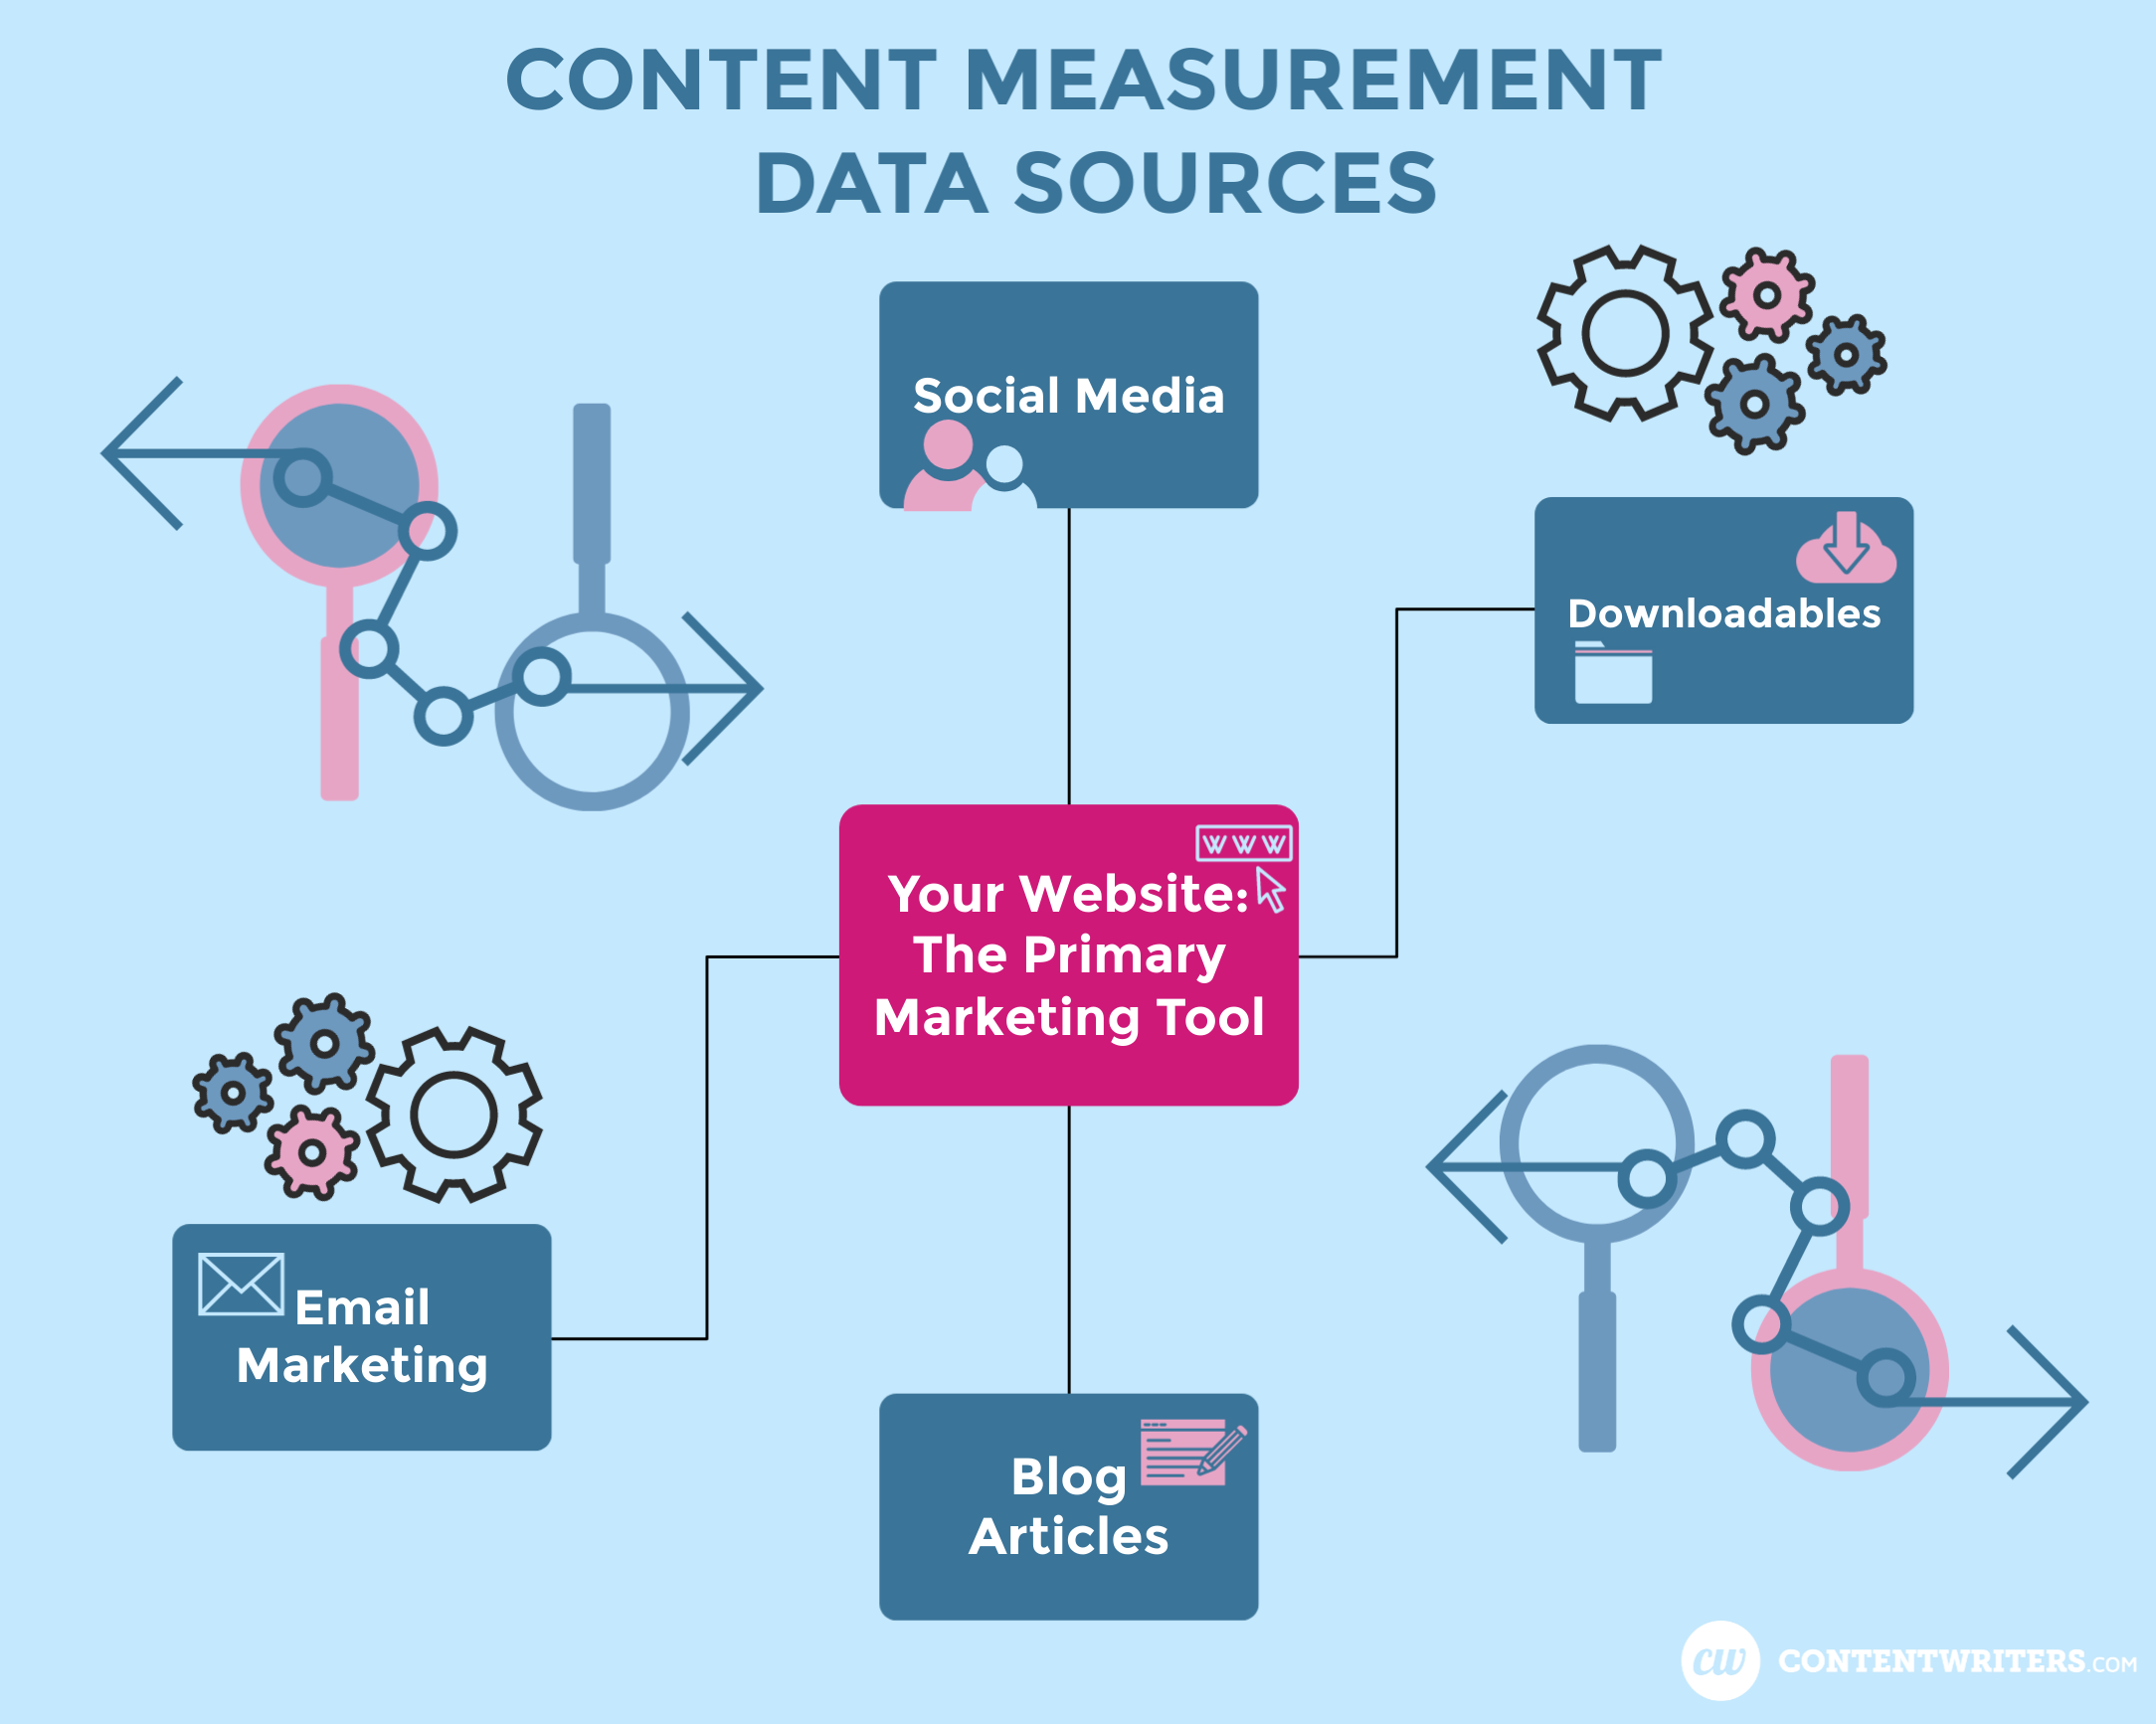 Content Measurement Data Sources ContentWriters